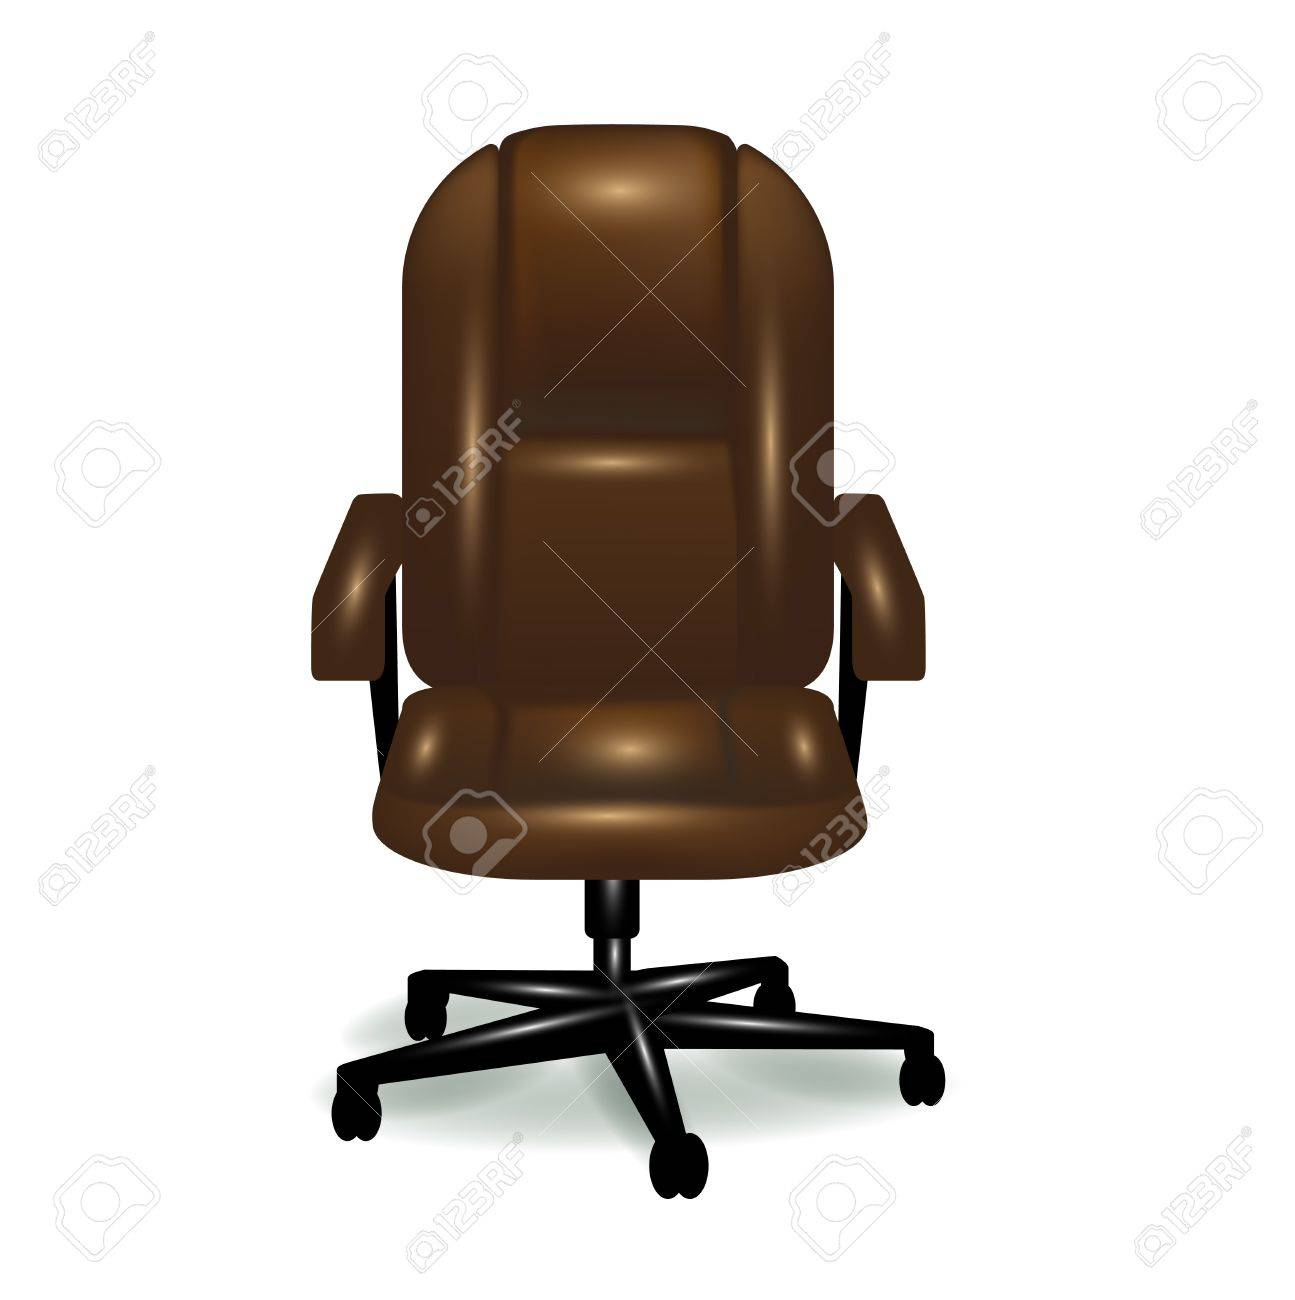 Wondrous Office Ergonomic Brown Leather Chair Isolated Spiritservingveterans Wood Chair Design Ideas Spiritservingveteransorg